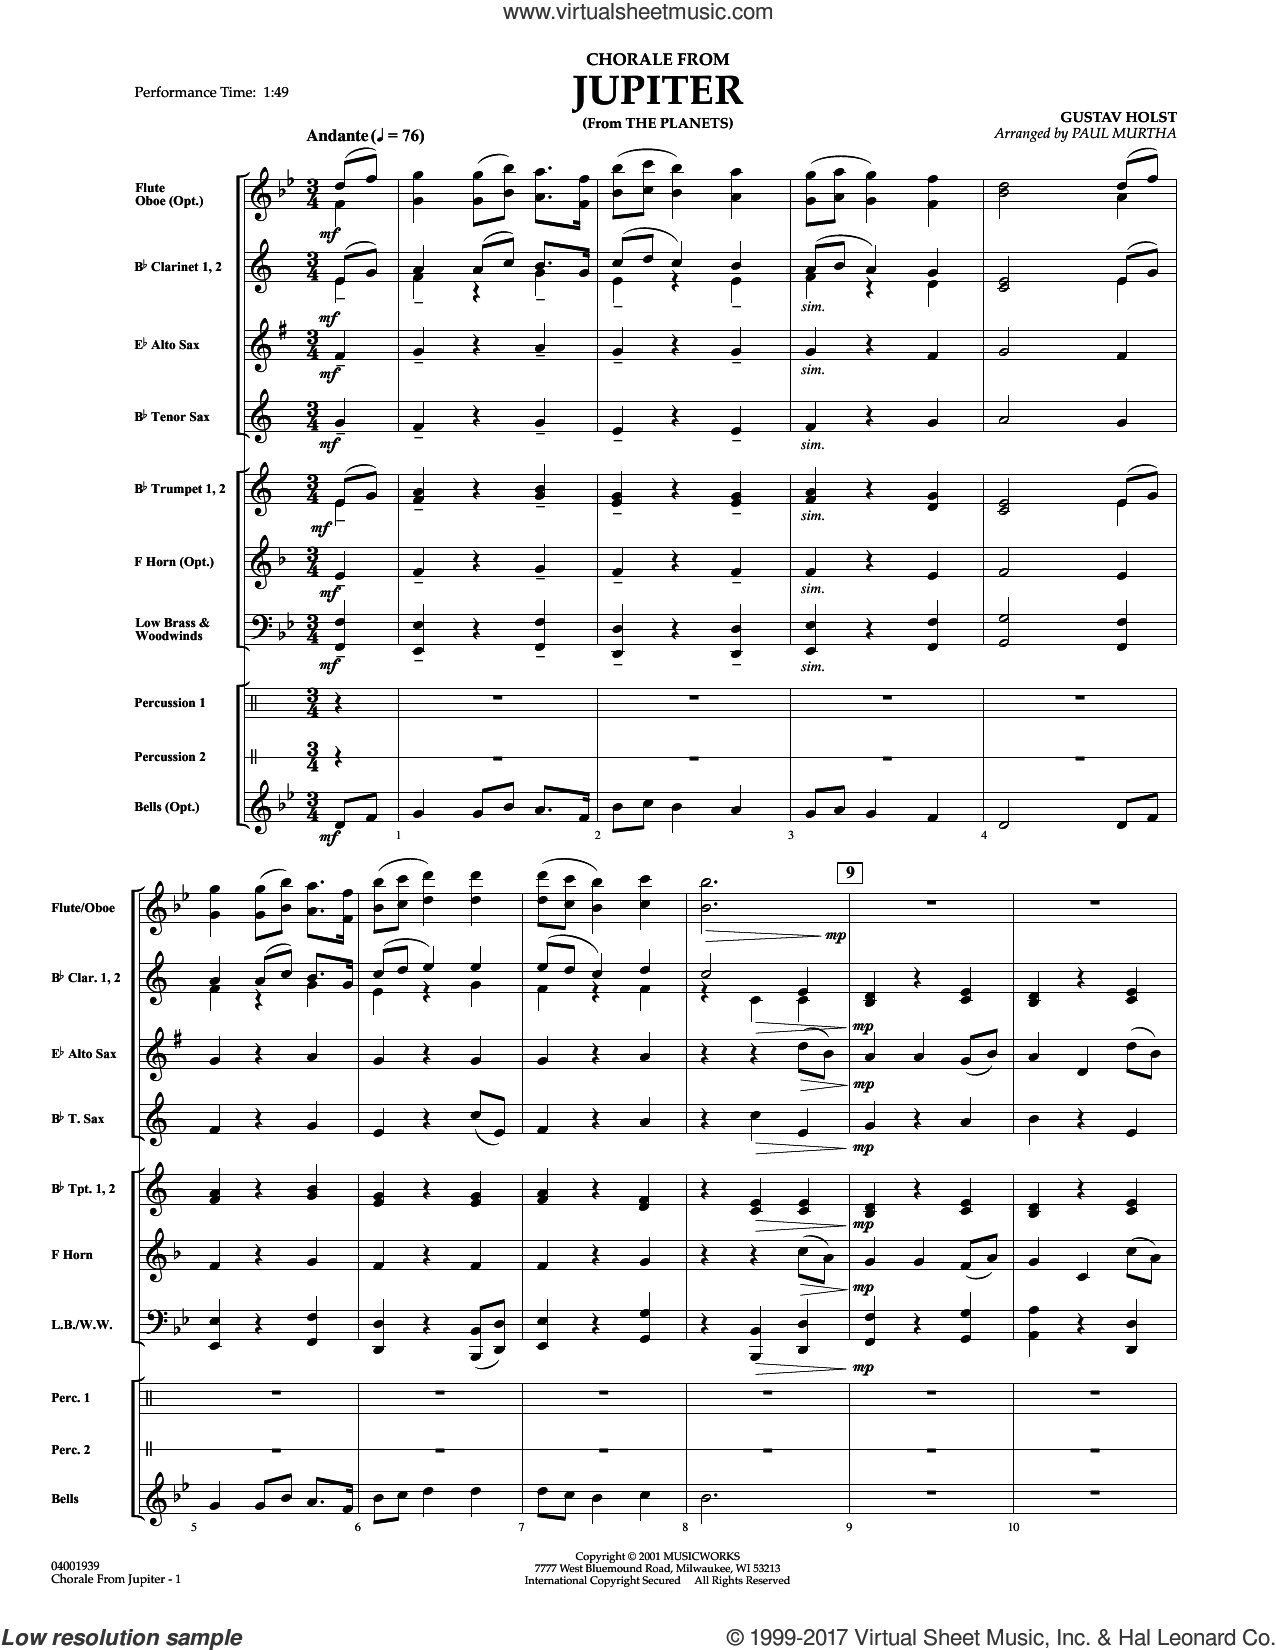 Chorale from Jupiter (COMPLETE) sheet music for concert band by Paul Murtha and Gustav Holst, classical score, intermediate skill level